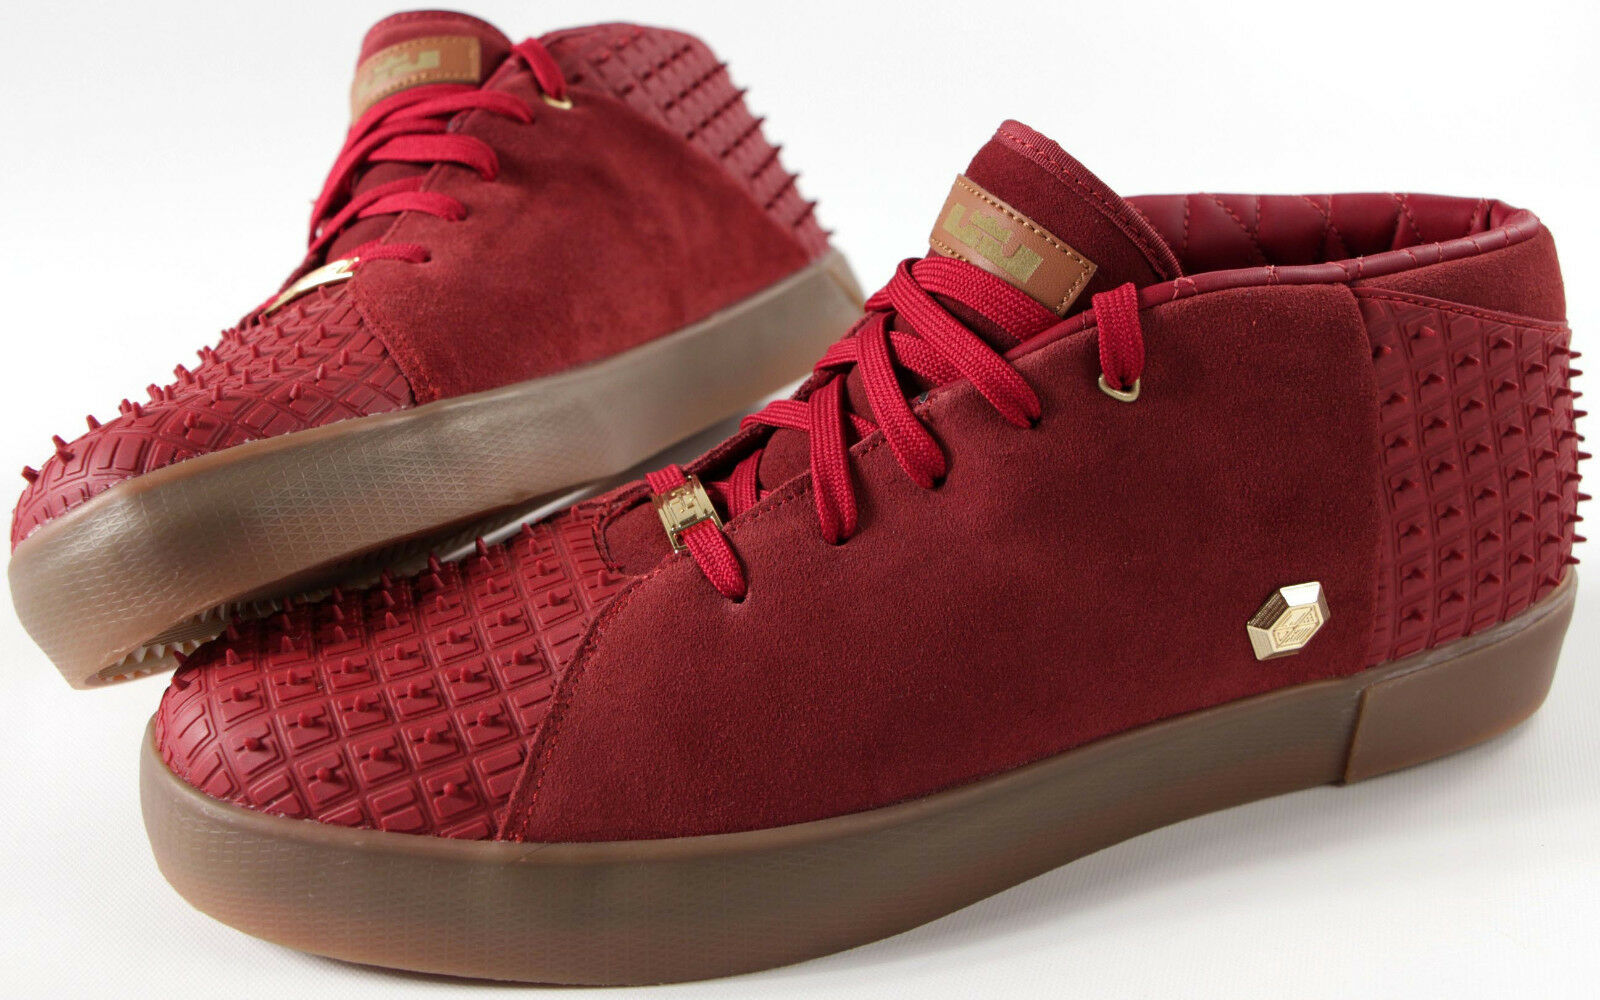 f0dd858740fc7 NIKE LEBRON XIII NSW Lifestyle shoes-NEW-Rubber Cty Maroon basketball  sneaker